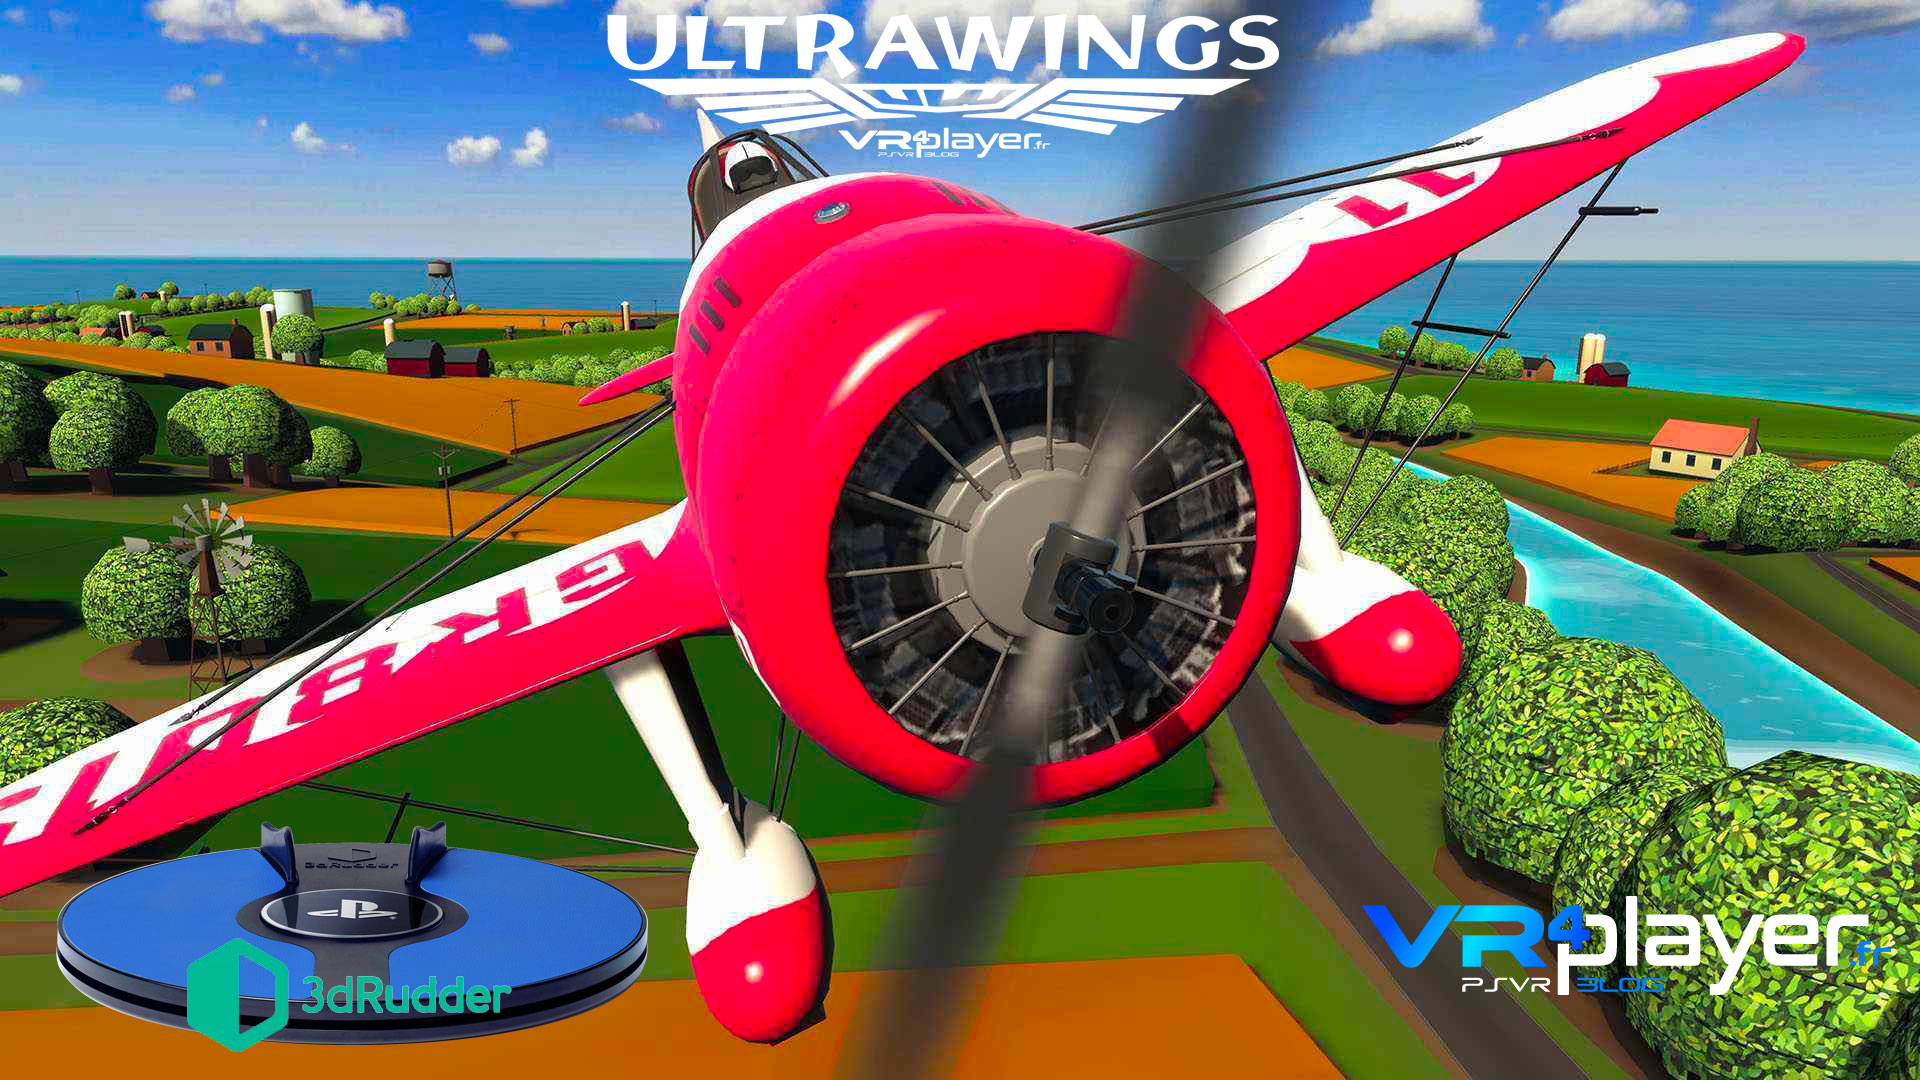 Ultrawings PSVR 3dRudder VR4player.fr